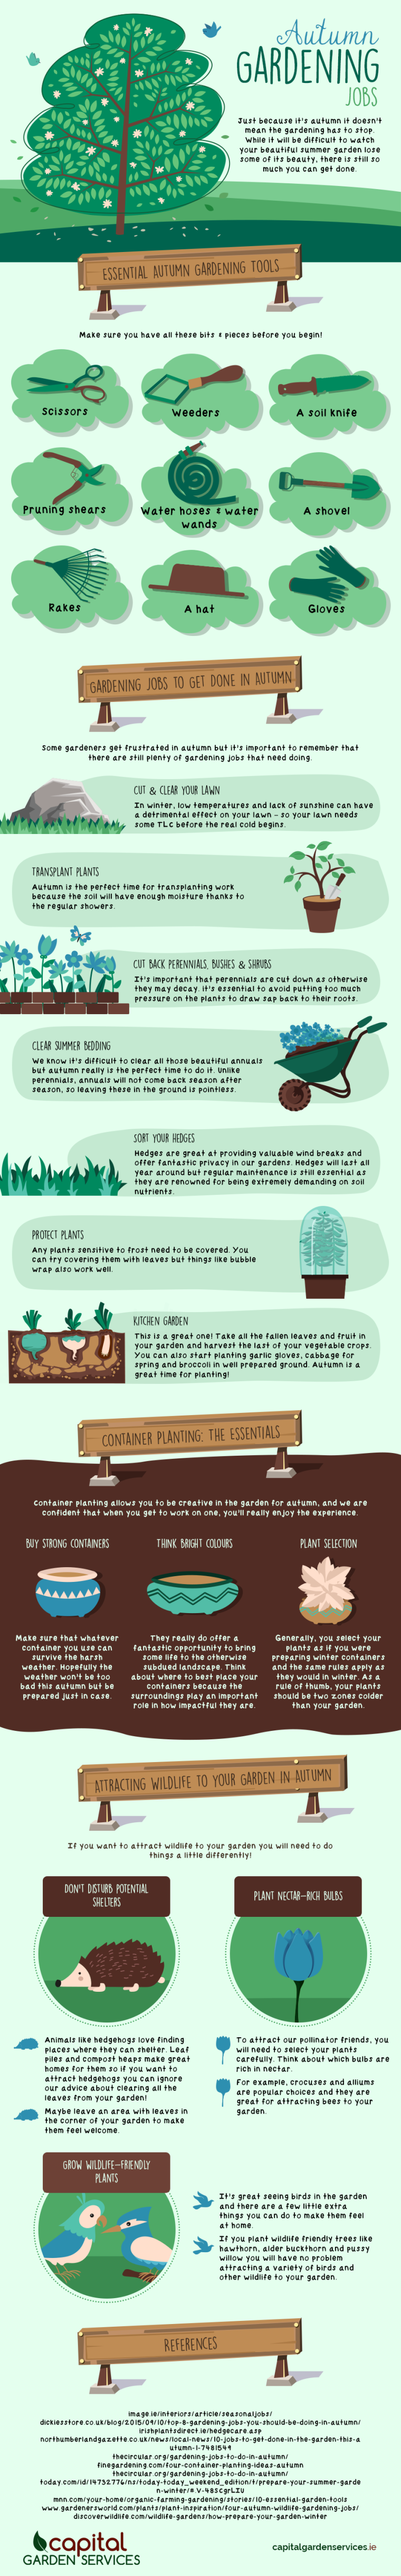 Autumn Gardening Jobs [Infographic] | ecogreenlove